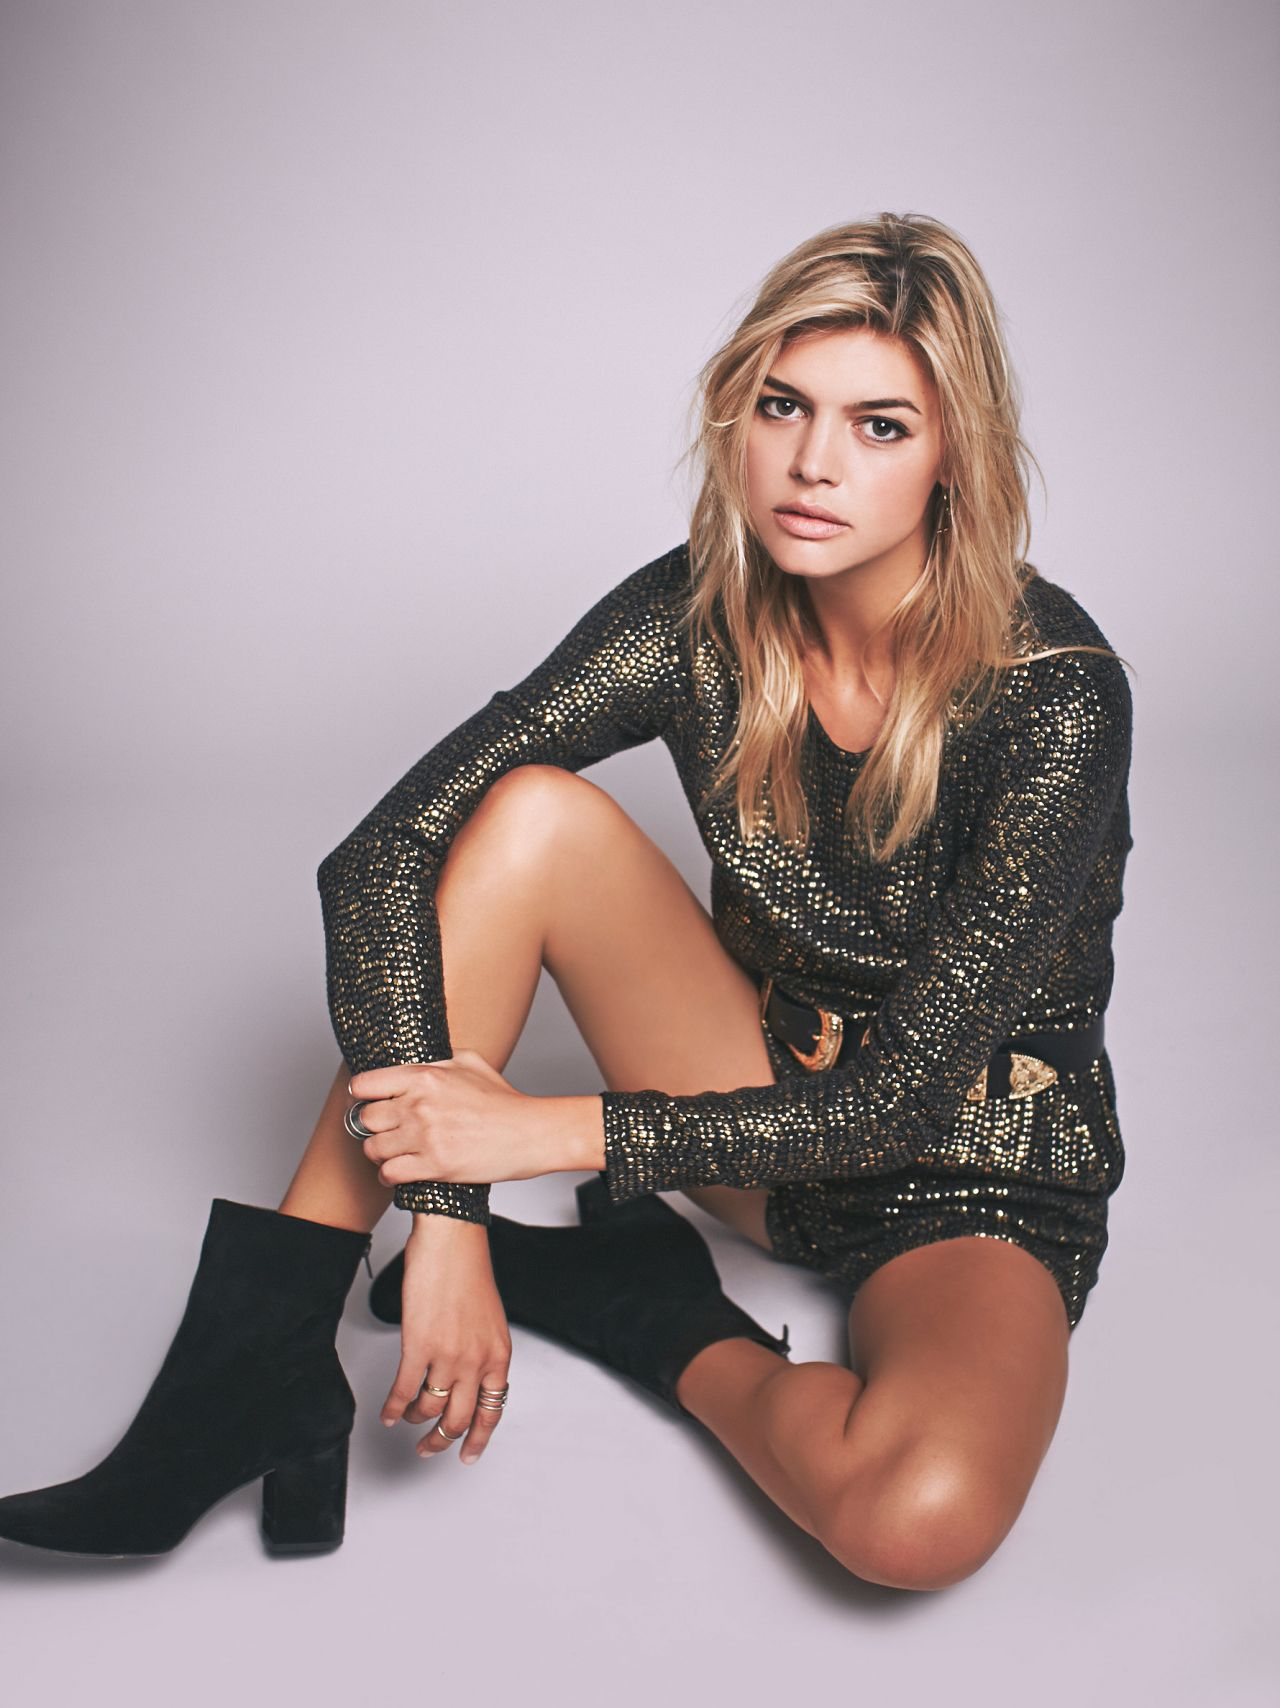 kelly-rohrbach-sexy-wallpaper